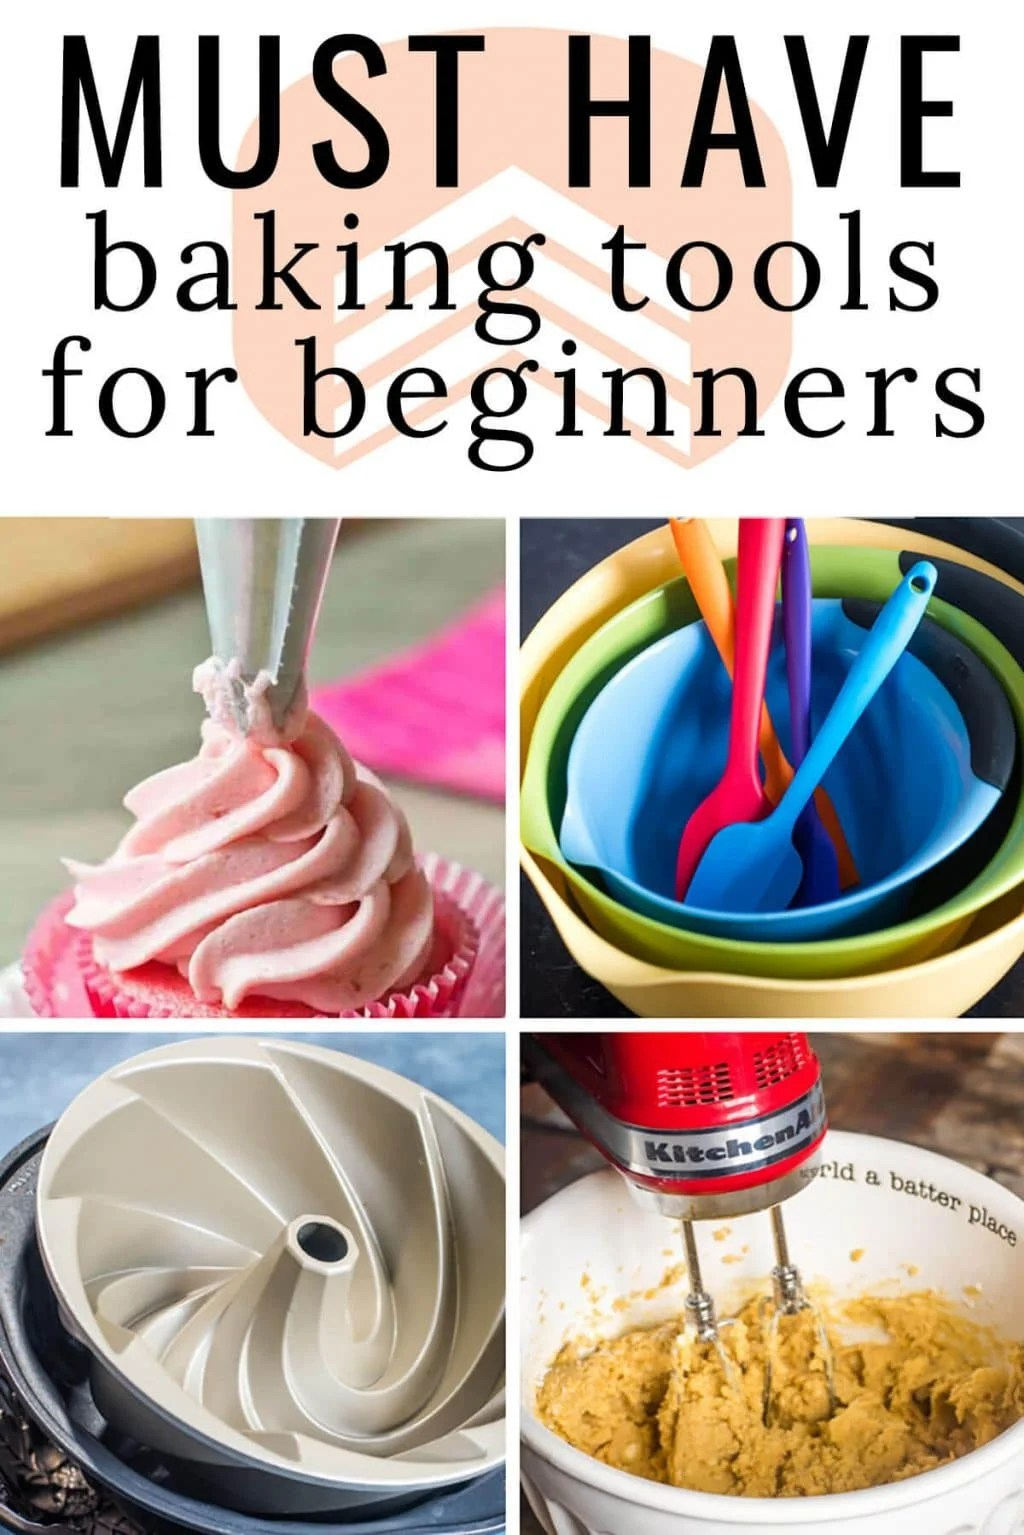 Looking for the perfect gift for the person in your life who wants to bake more? Here is a list of all of the essential gifts for beginning bakers to get them started! #baking #cake #giftguide #gift via @thebestcakerecipes